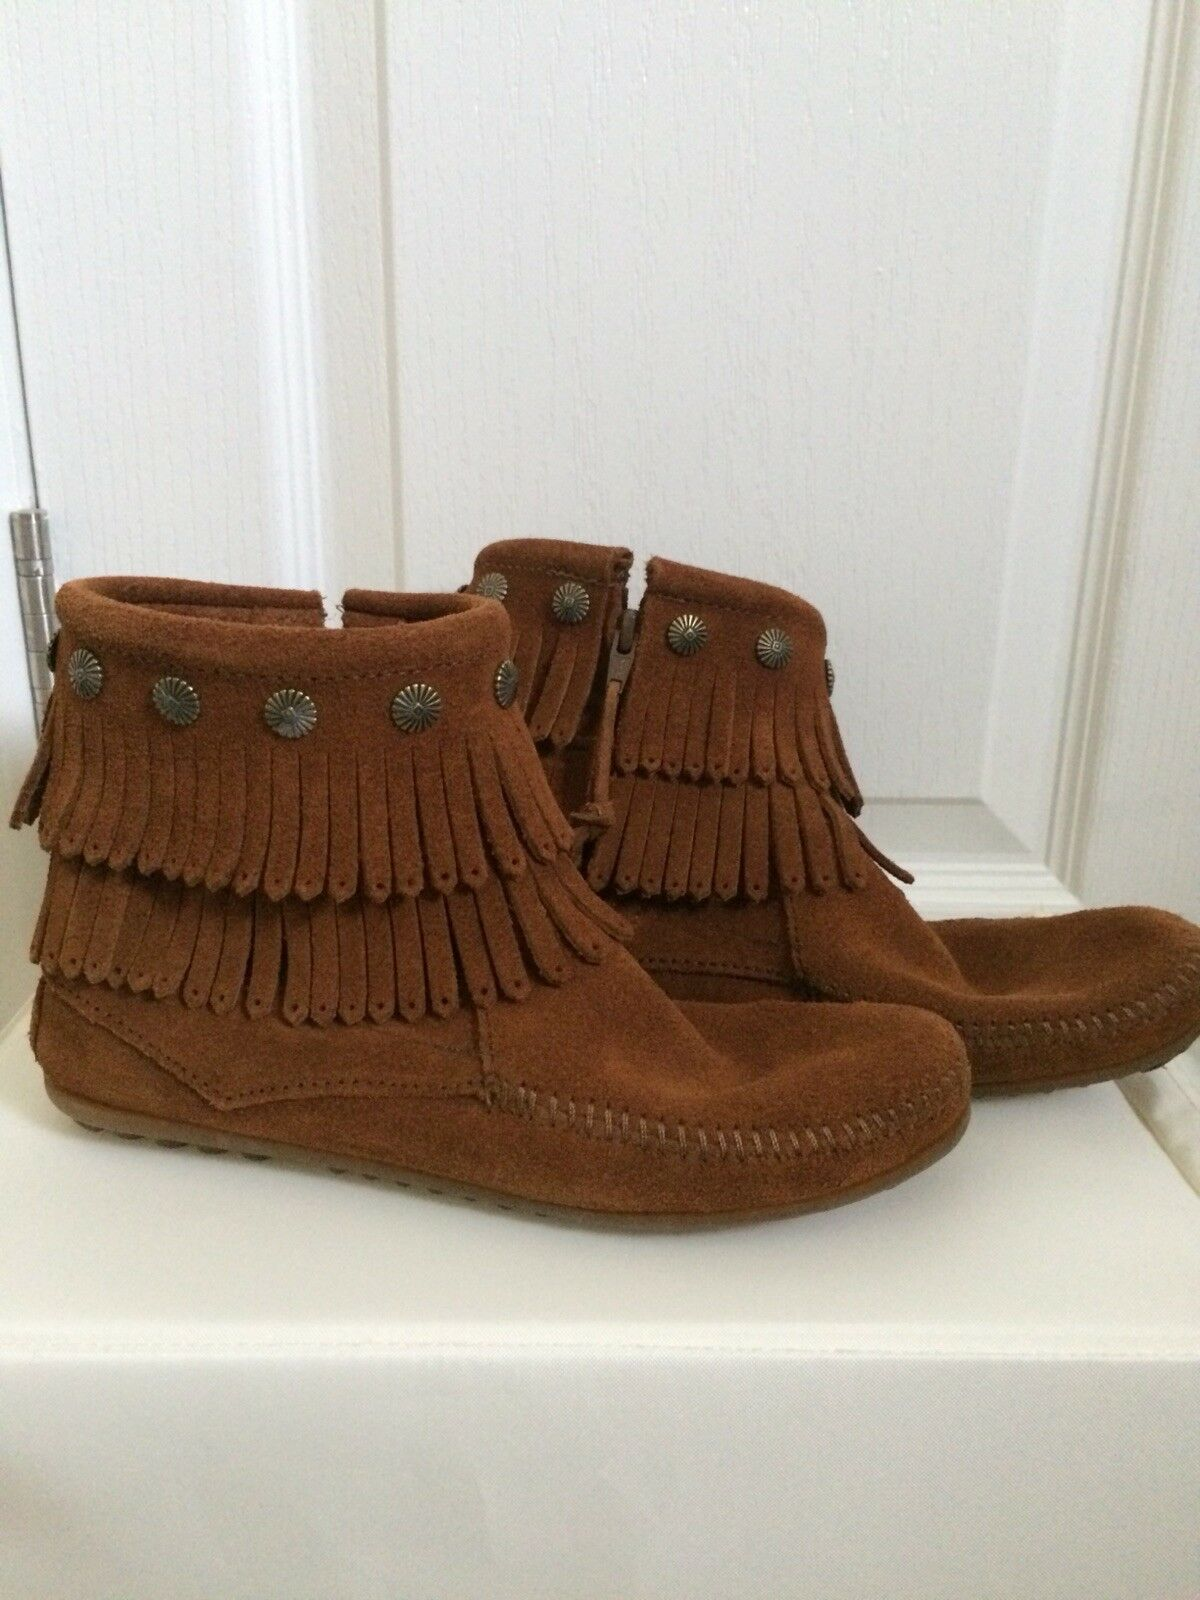 Minnetonka US 7 Suede Moccassin BOHO Ankle Boots Worn Once Briefly